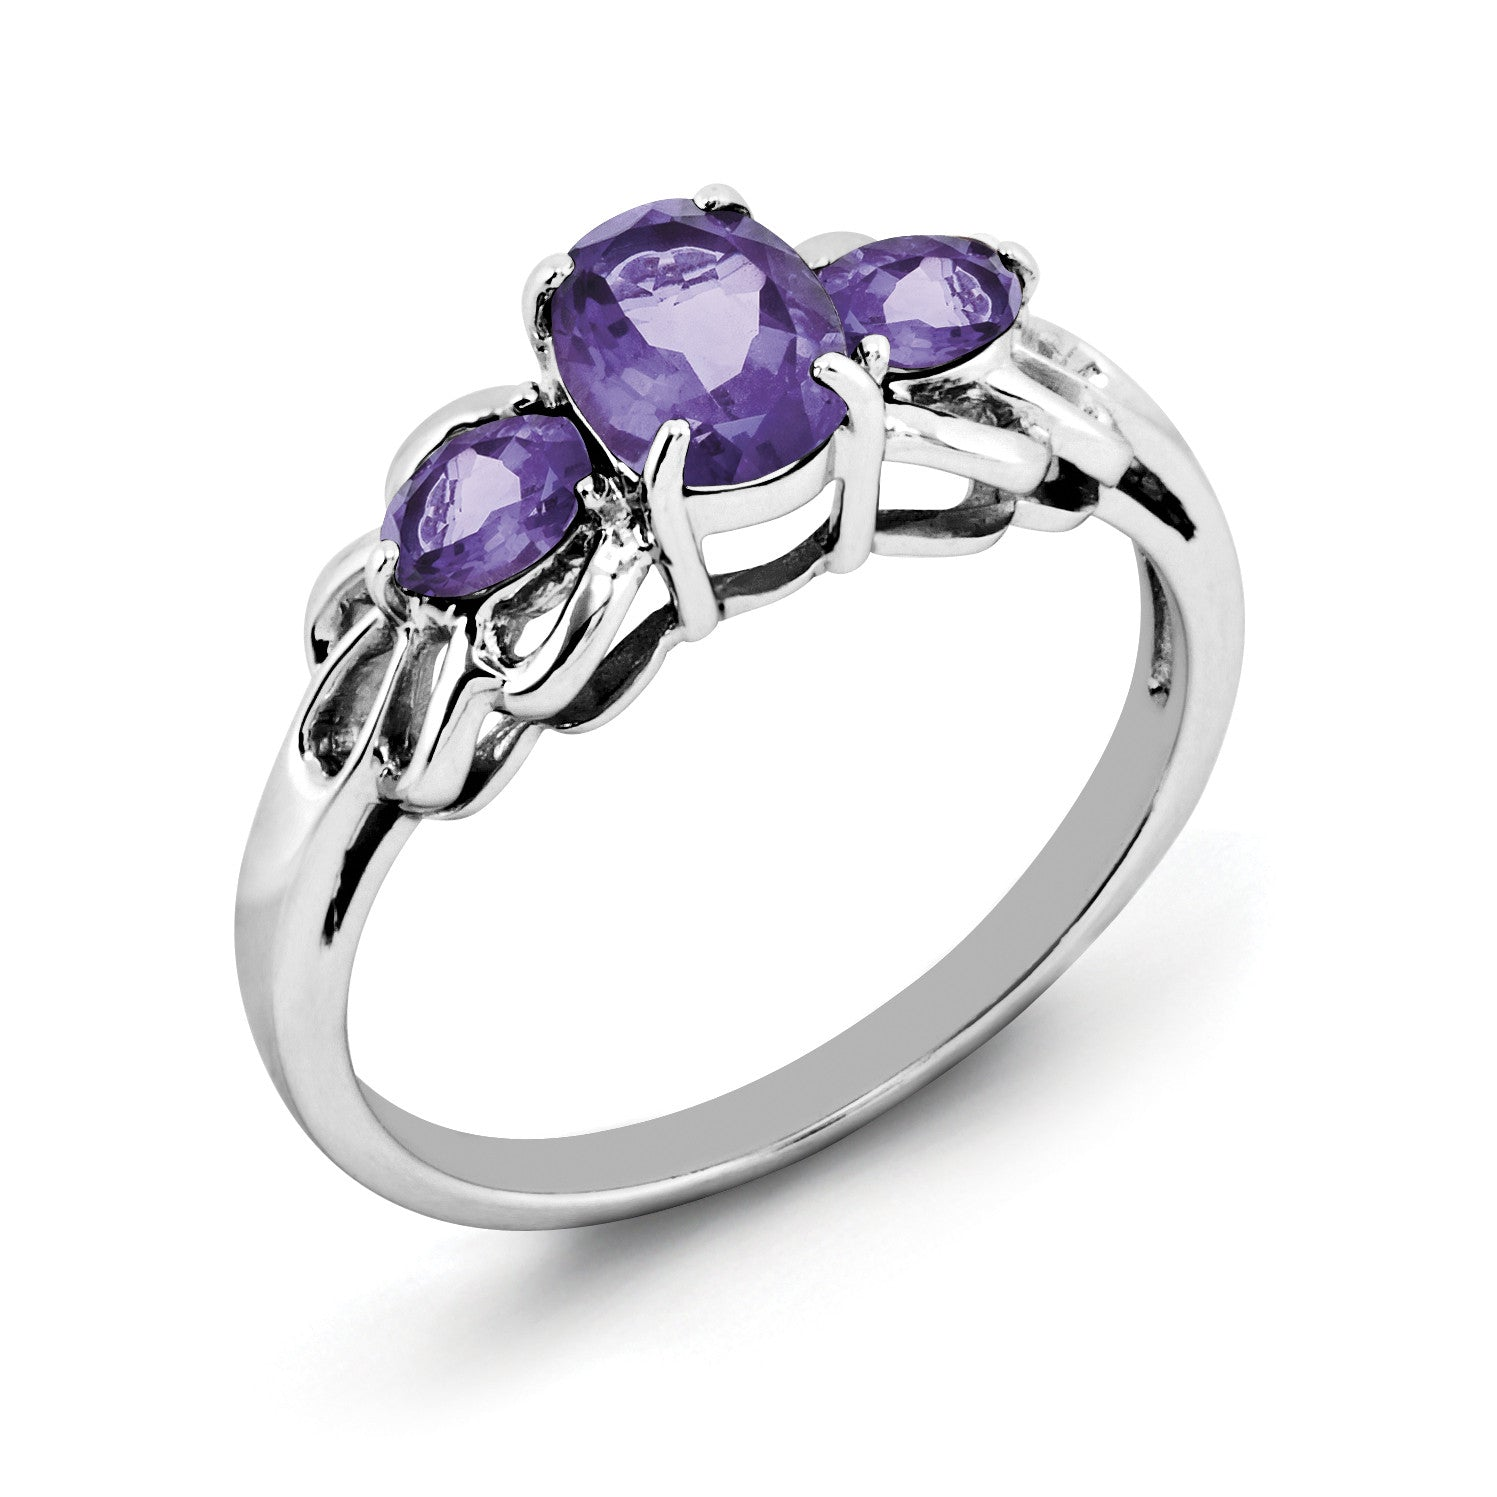 Sterling Silver Rhodium Plated Oval Amethyst Ring QR2905AM - shirin-diamonds